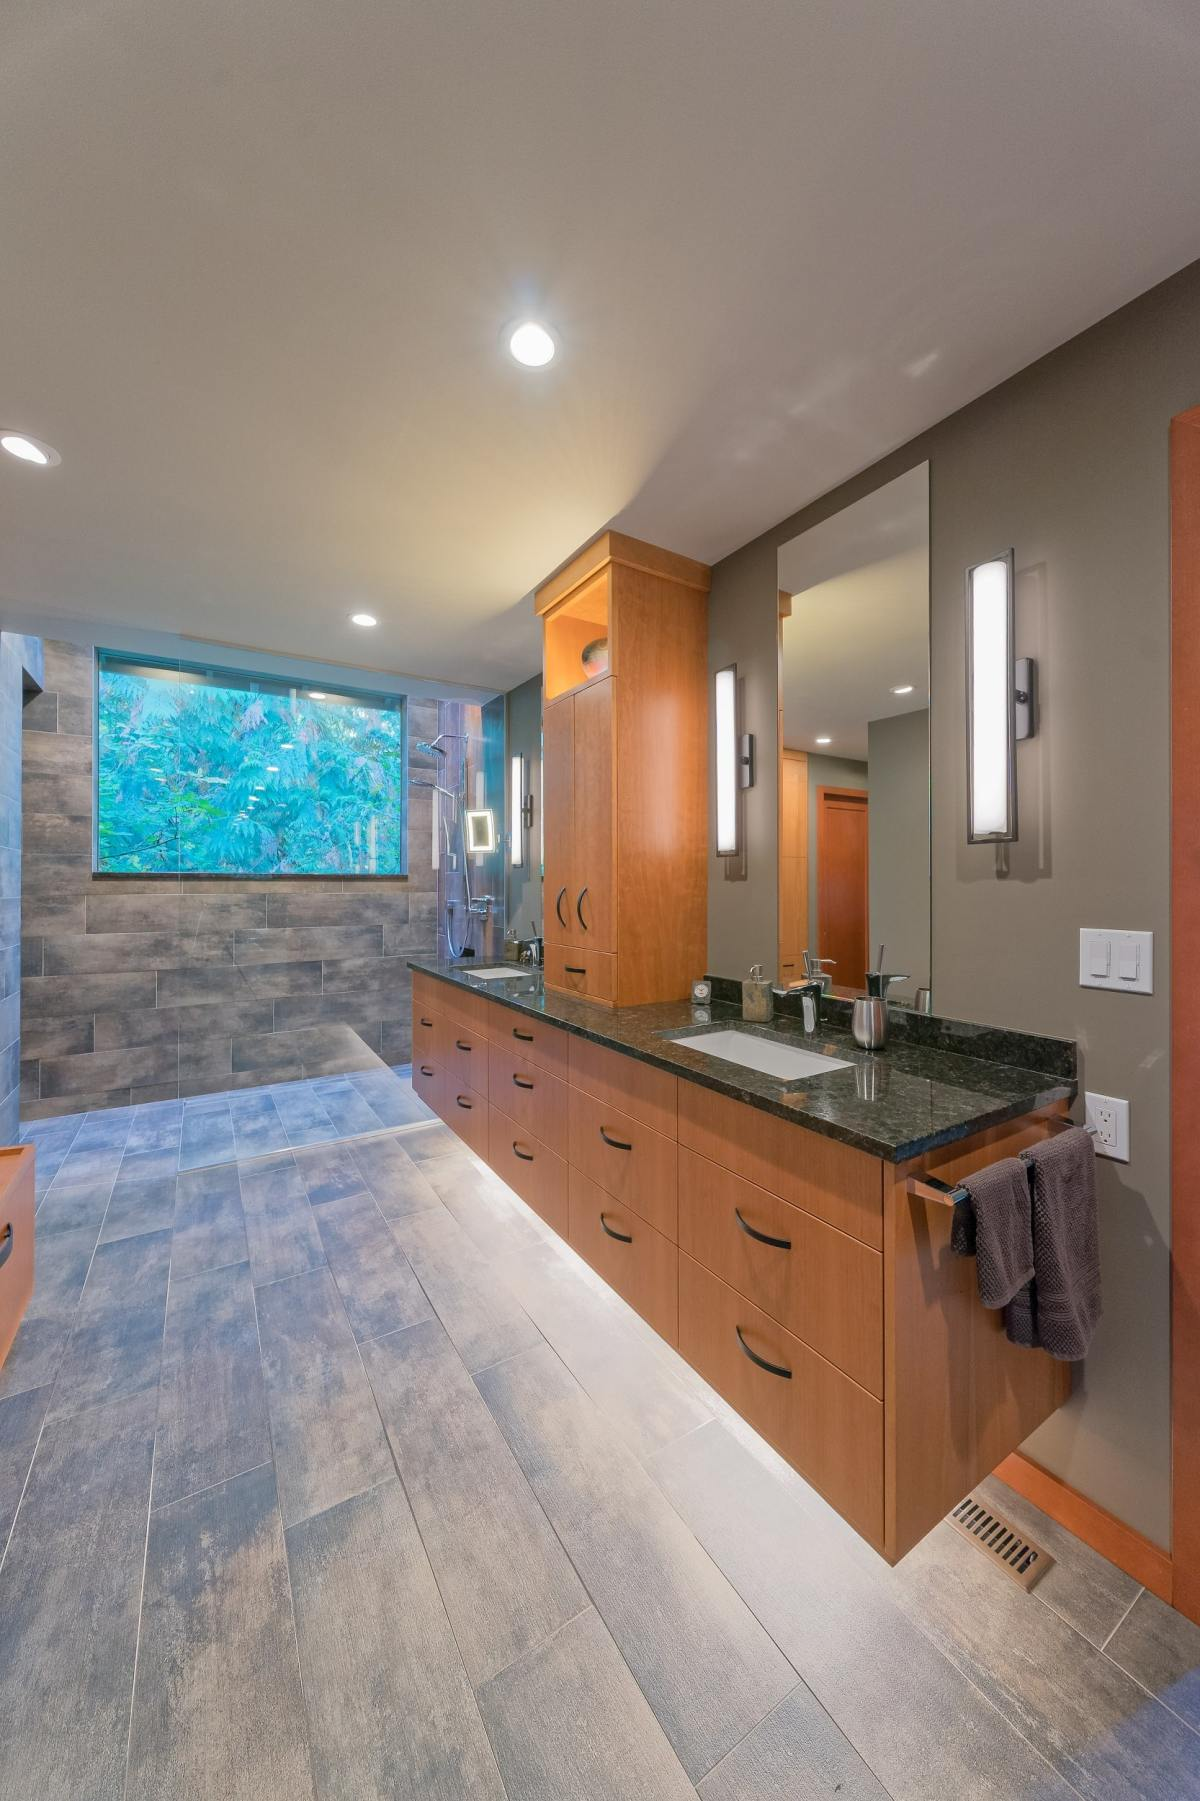 long horizontal tan vanity cabinets with under lighting